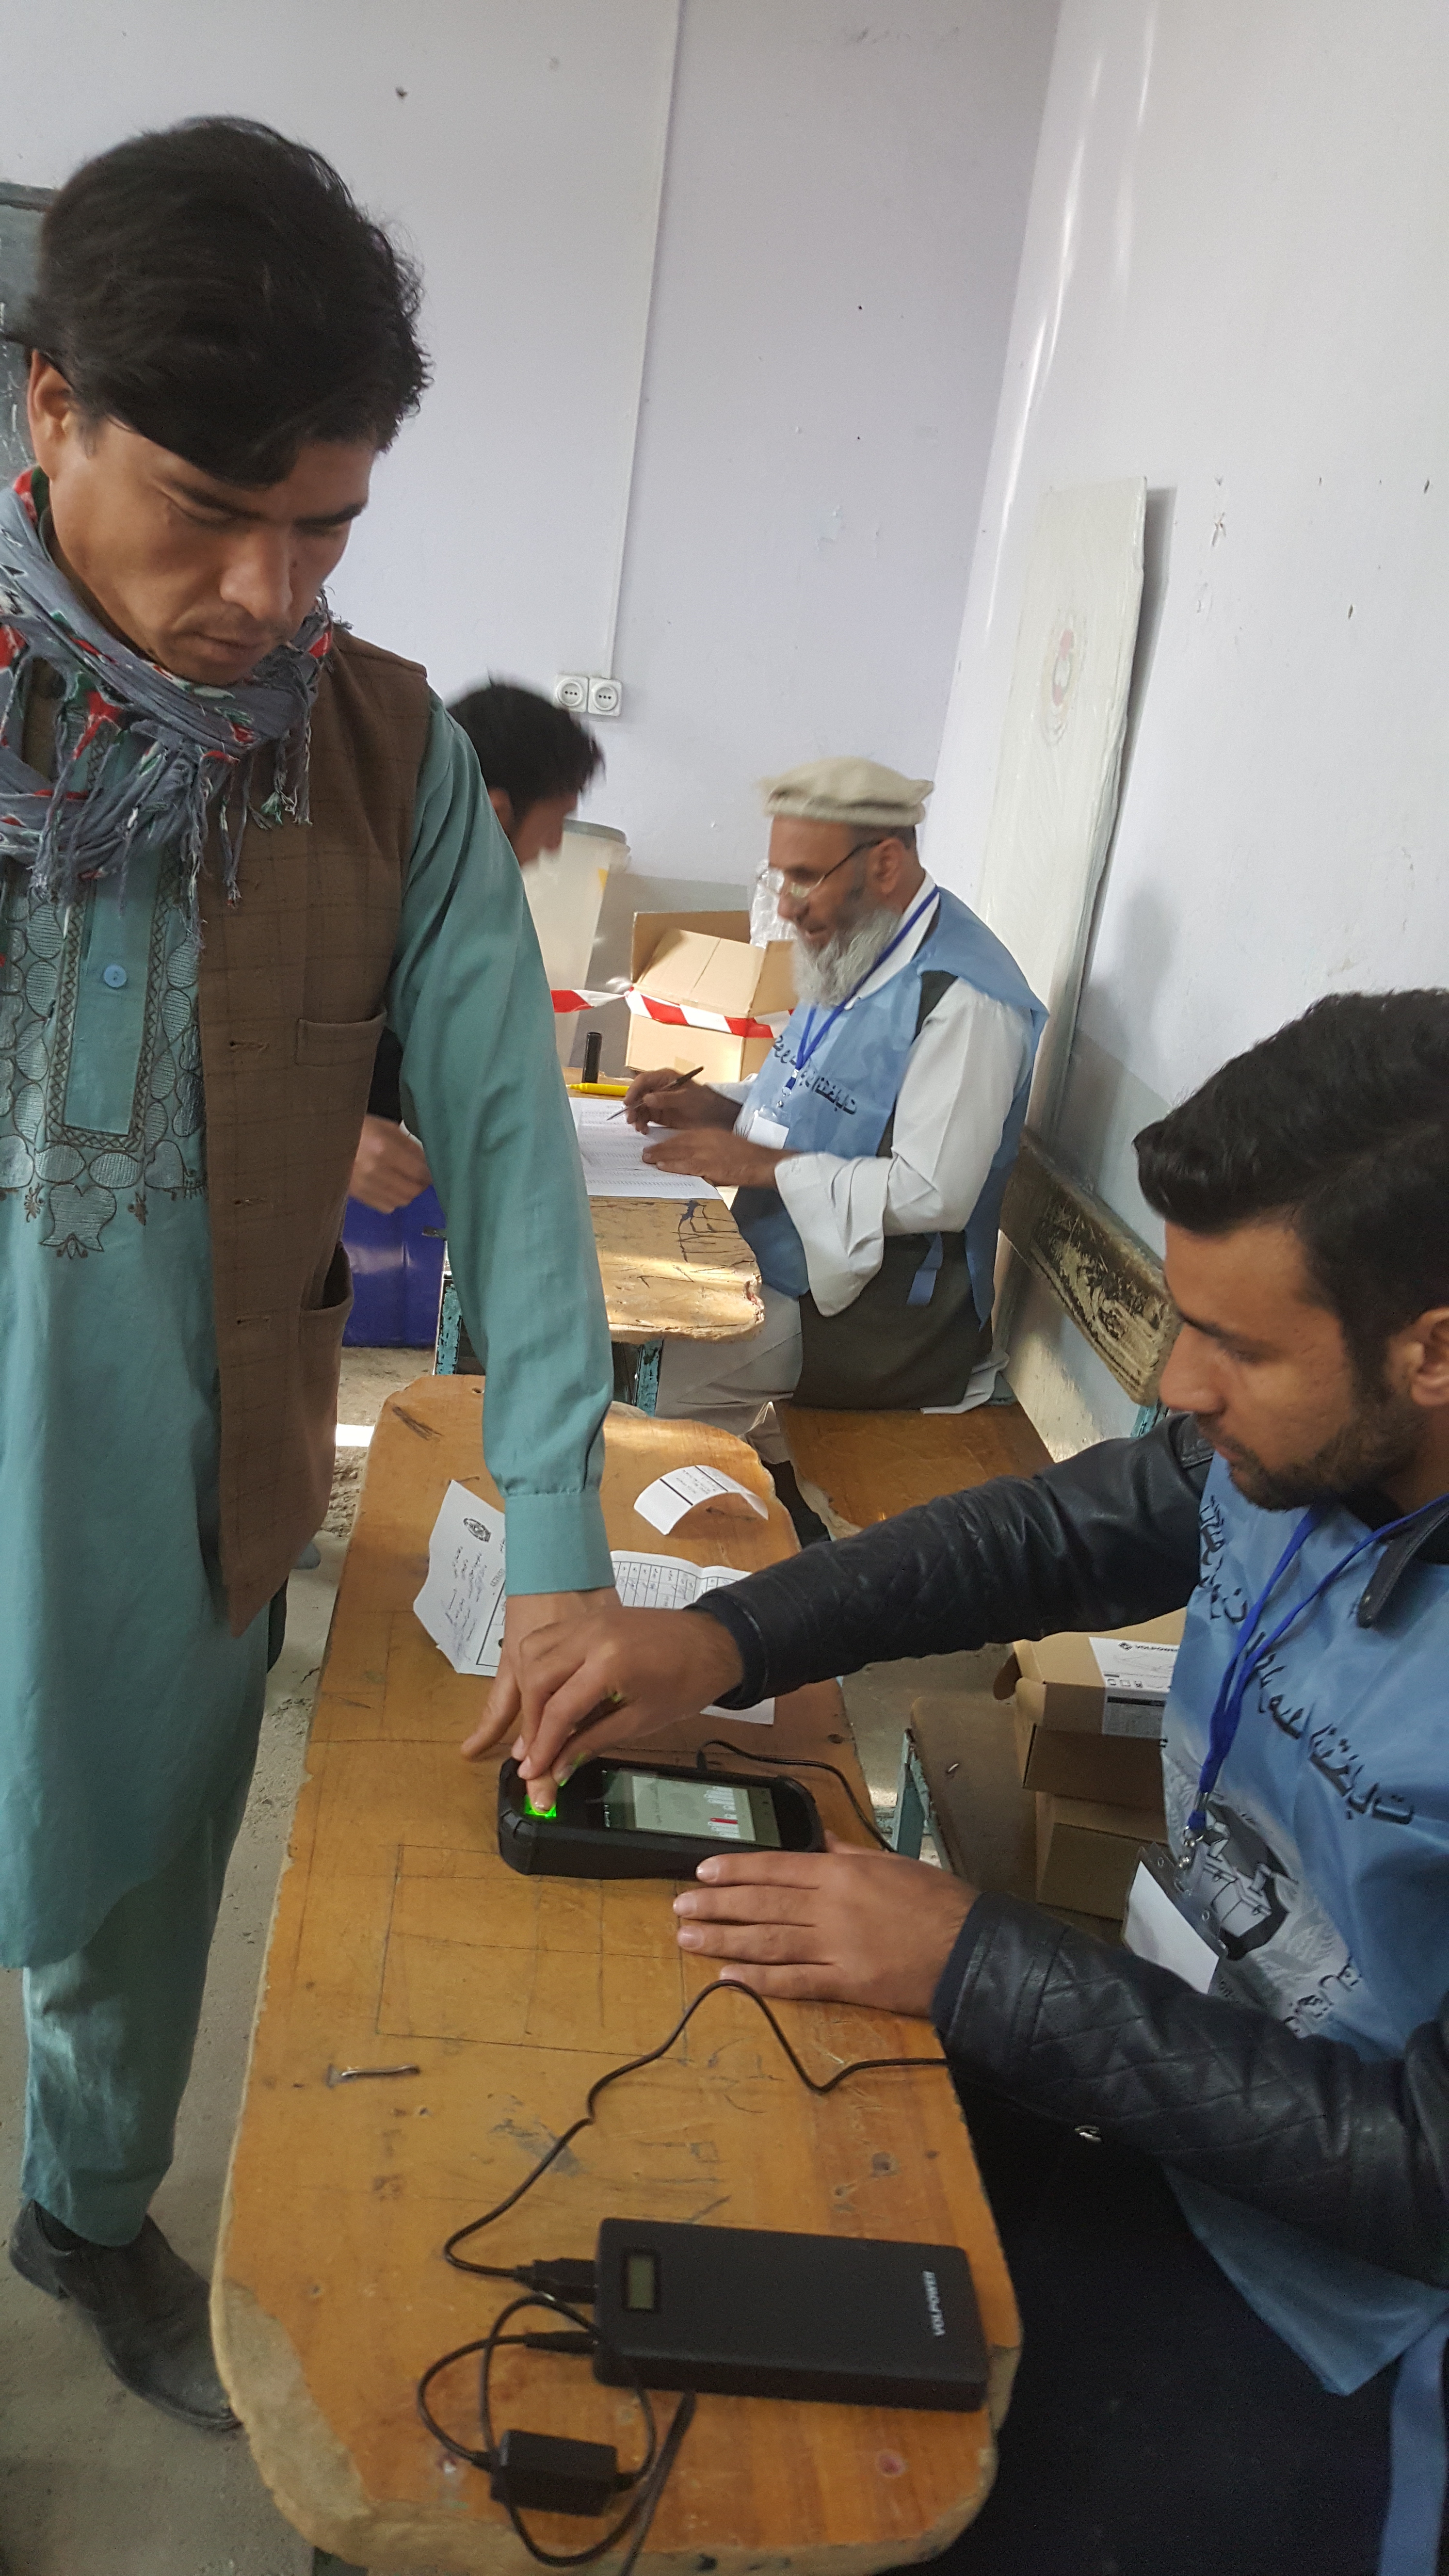 A man in a Kabul polling station is getting his fingerprints taken on the new biometrics system introduced to reduce fraud in elections, Oct. 20, 2018.